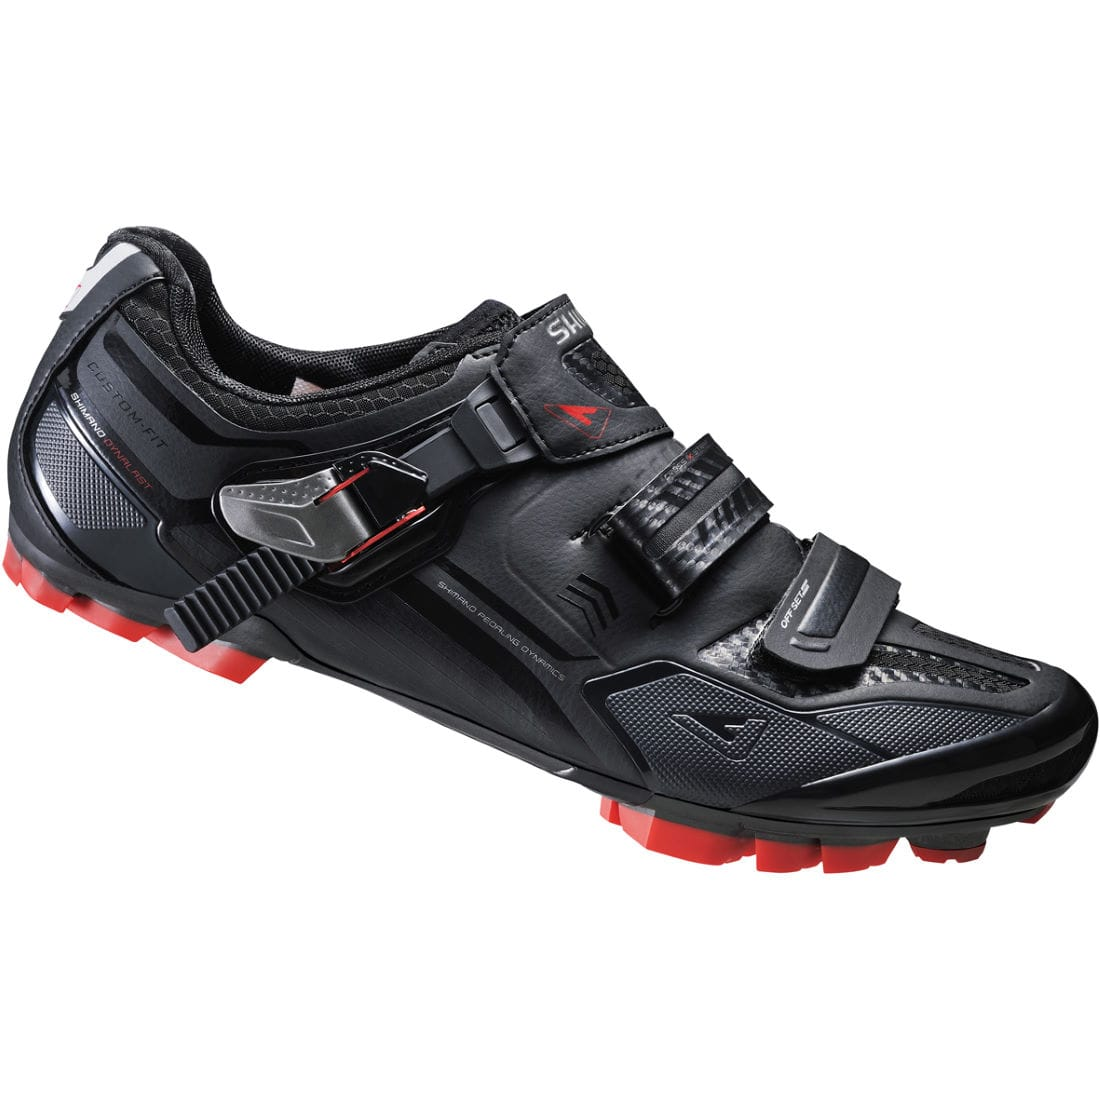 Shimano Xc70 Spd Mtb Shoe All Terrain Cycles